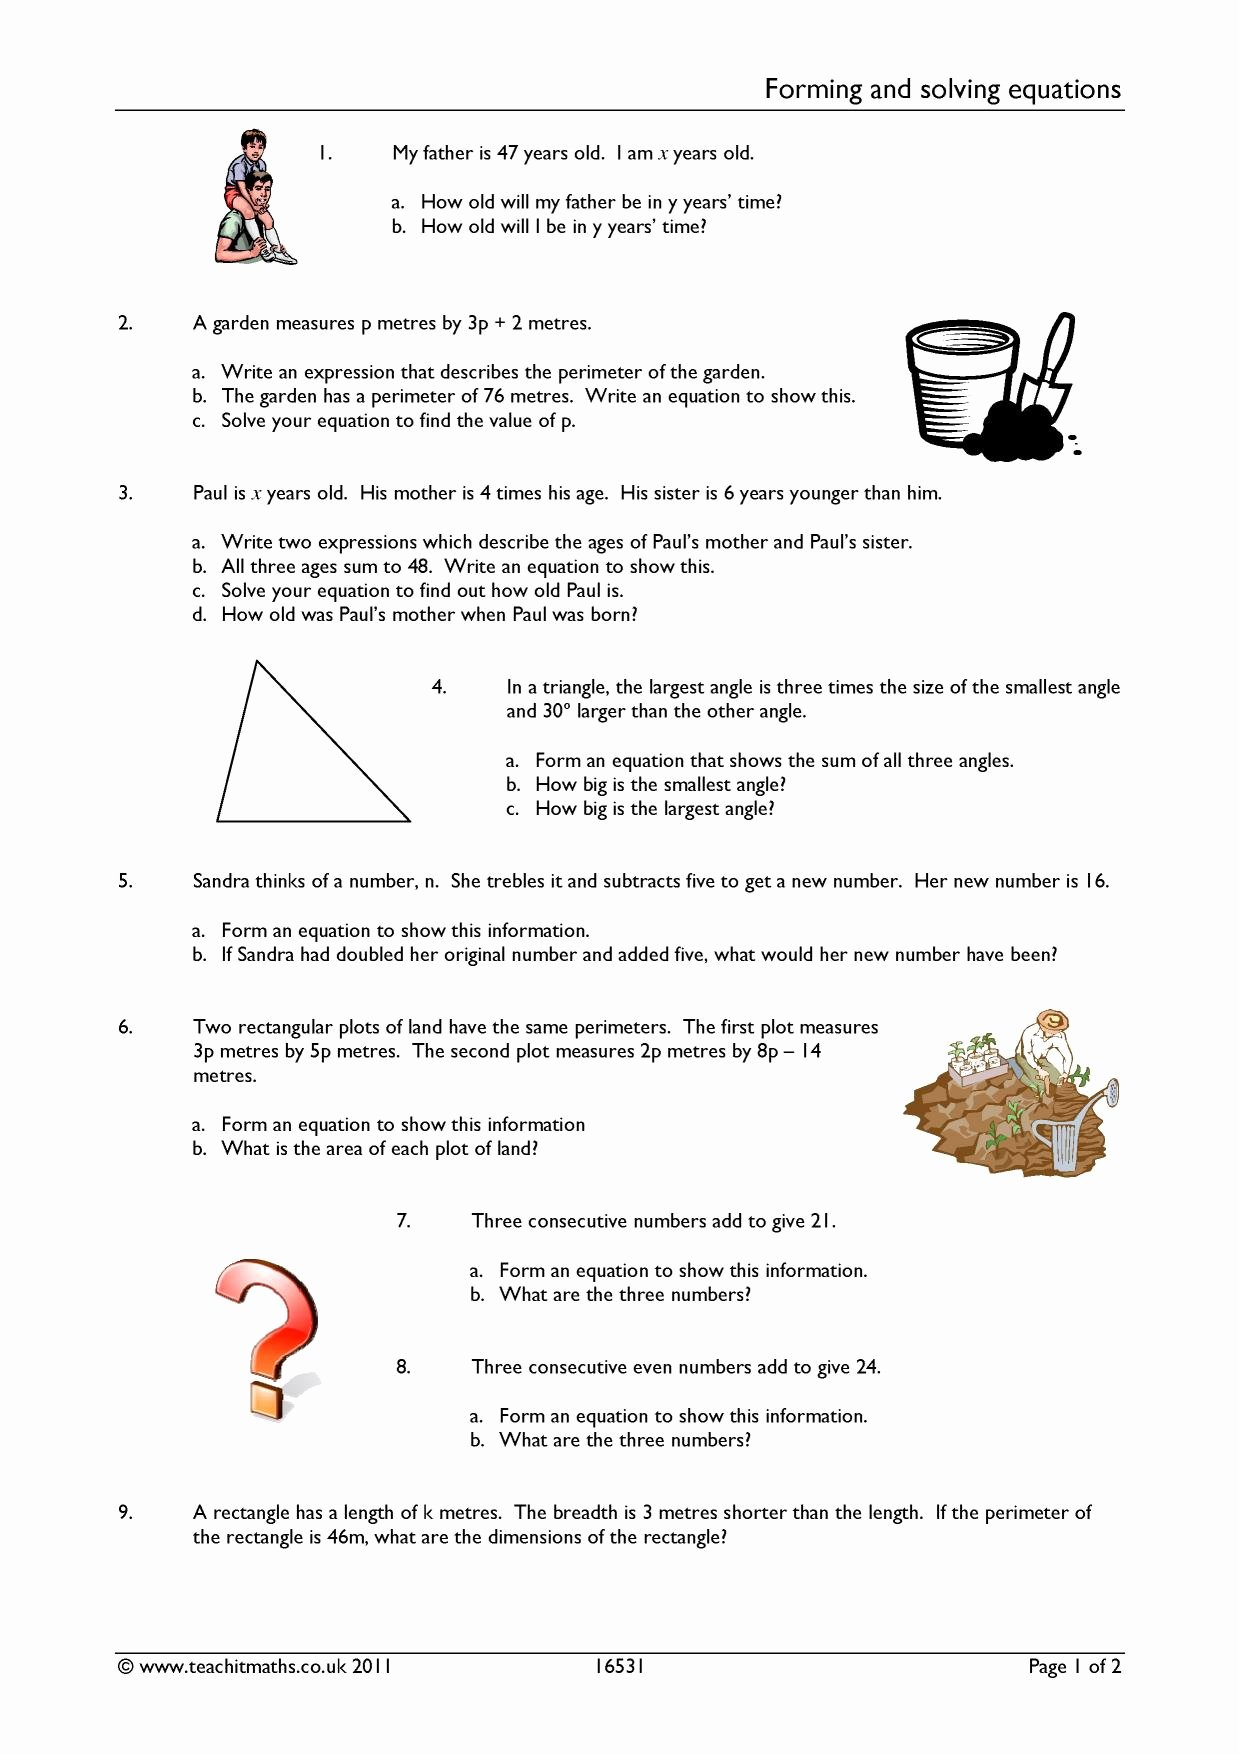 Intermediate Value theorem Worksheet Inspirational forming and solving Equations Algebra Linear Equations